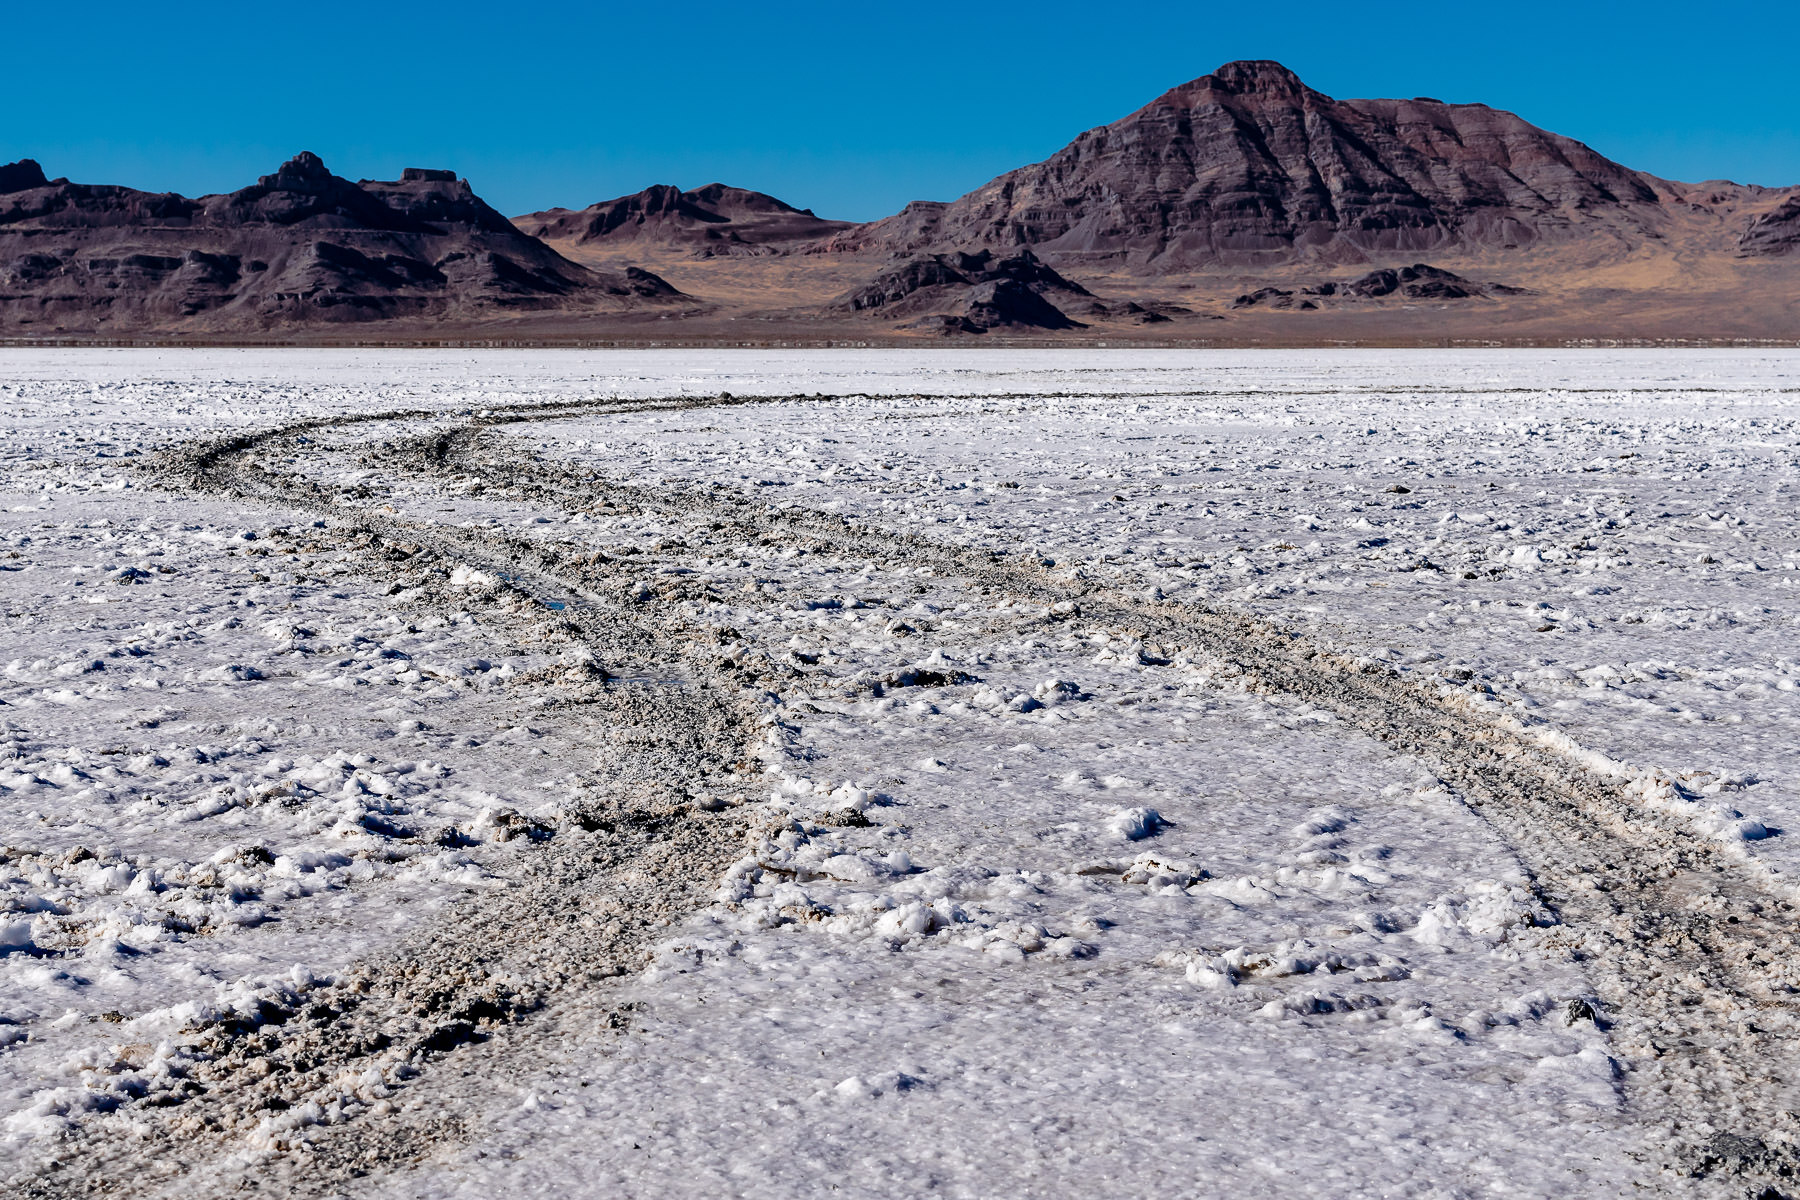 Tire tracks mar the surface of Utah's Bonneville Salt Flats.